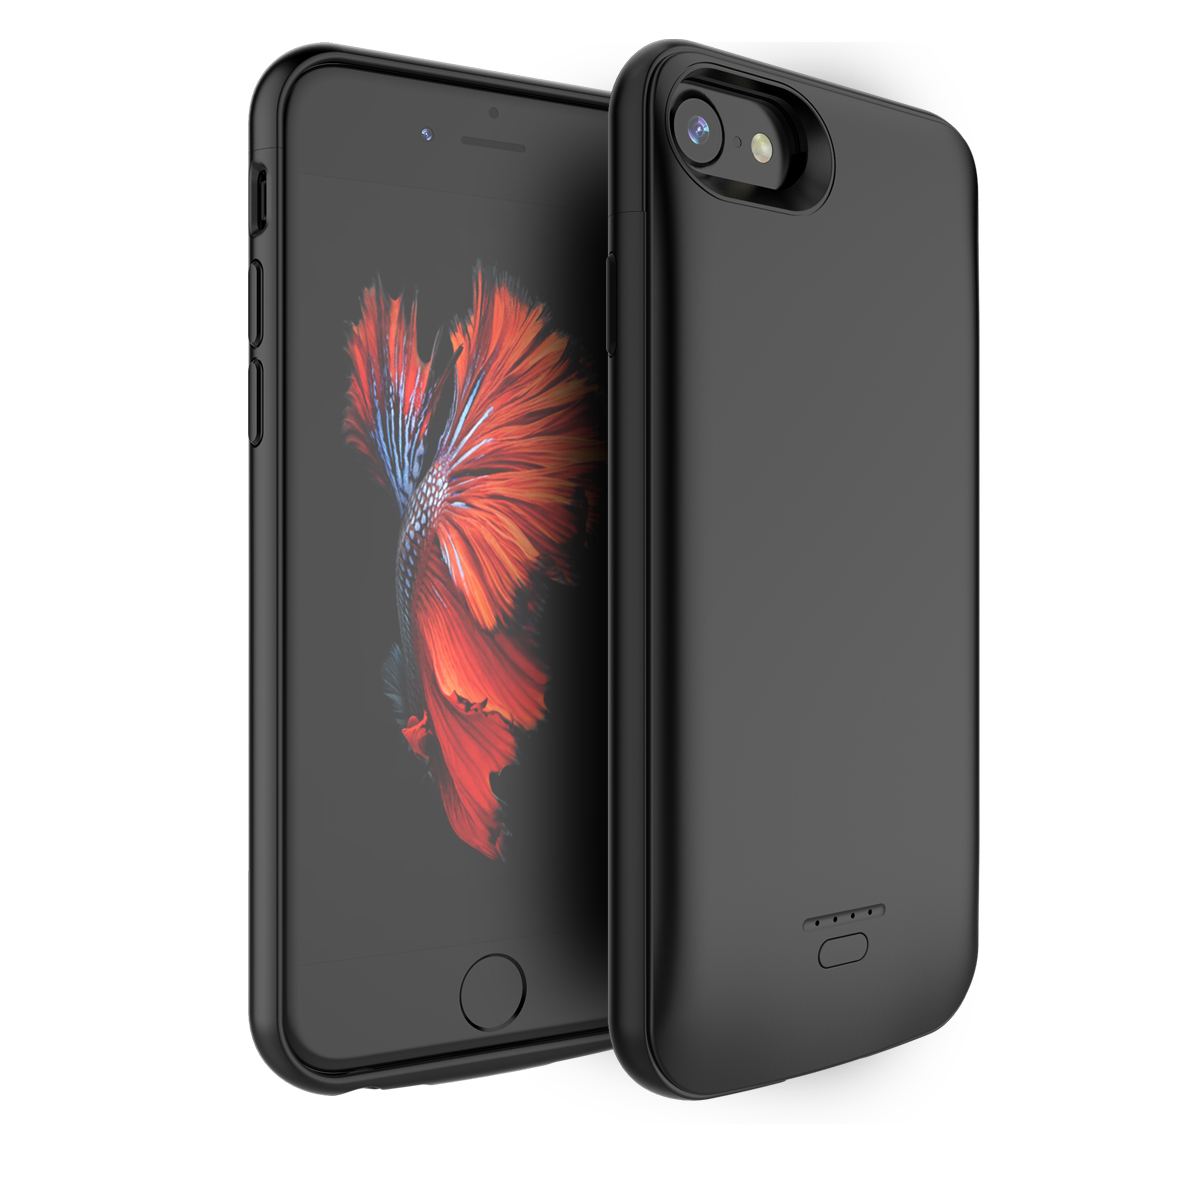 4000mAh Battery Charger Case For iPhone 6 6S Cover Power Bank Charging Fundas Ultra Thin Powerbank Charging Case for iPhone 7 84000mAh Battery Charger Case For iPhone 6 6S Cover Power Bank Charging Fundas Ultra Thin Powerbank Charging Case for iPhone 7 8